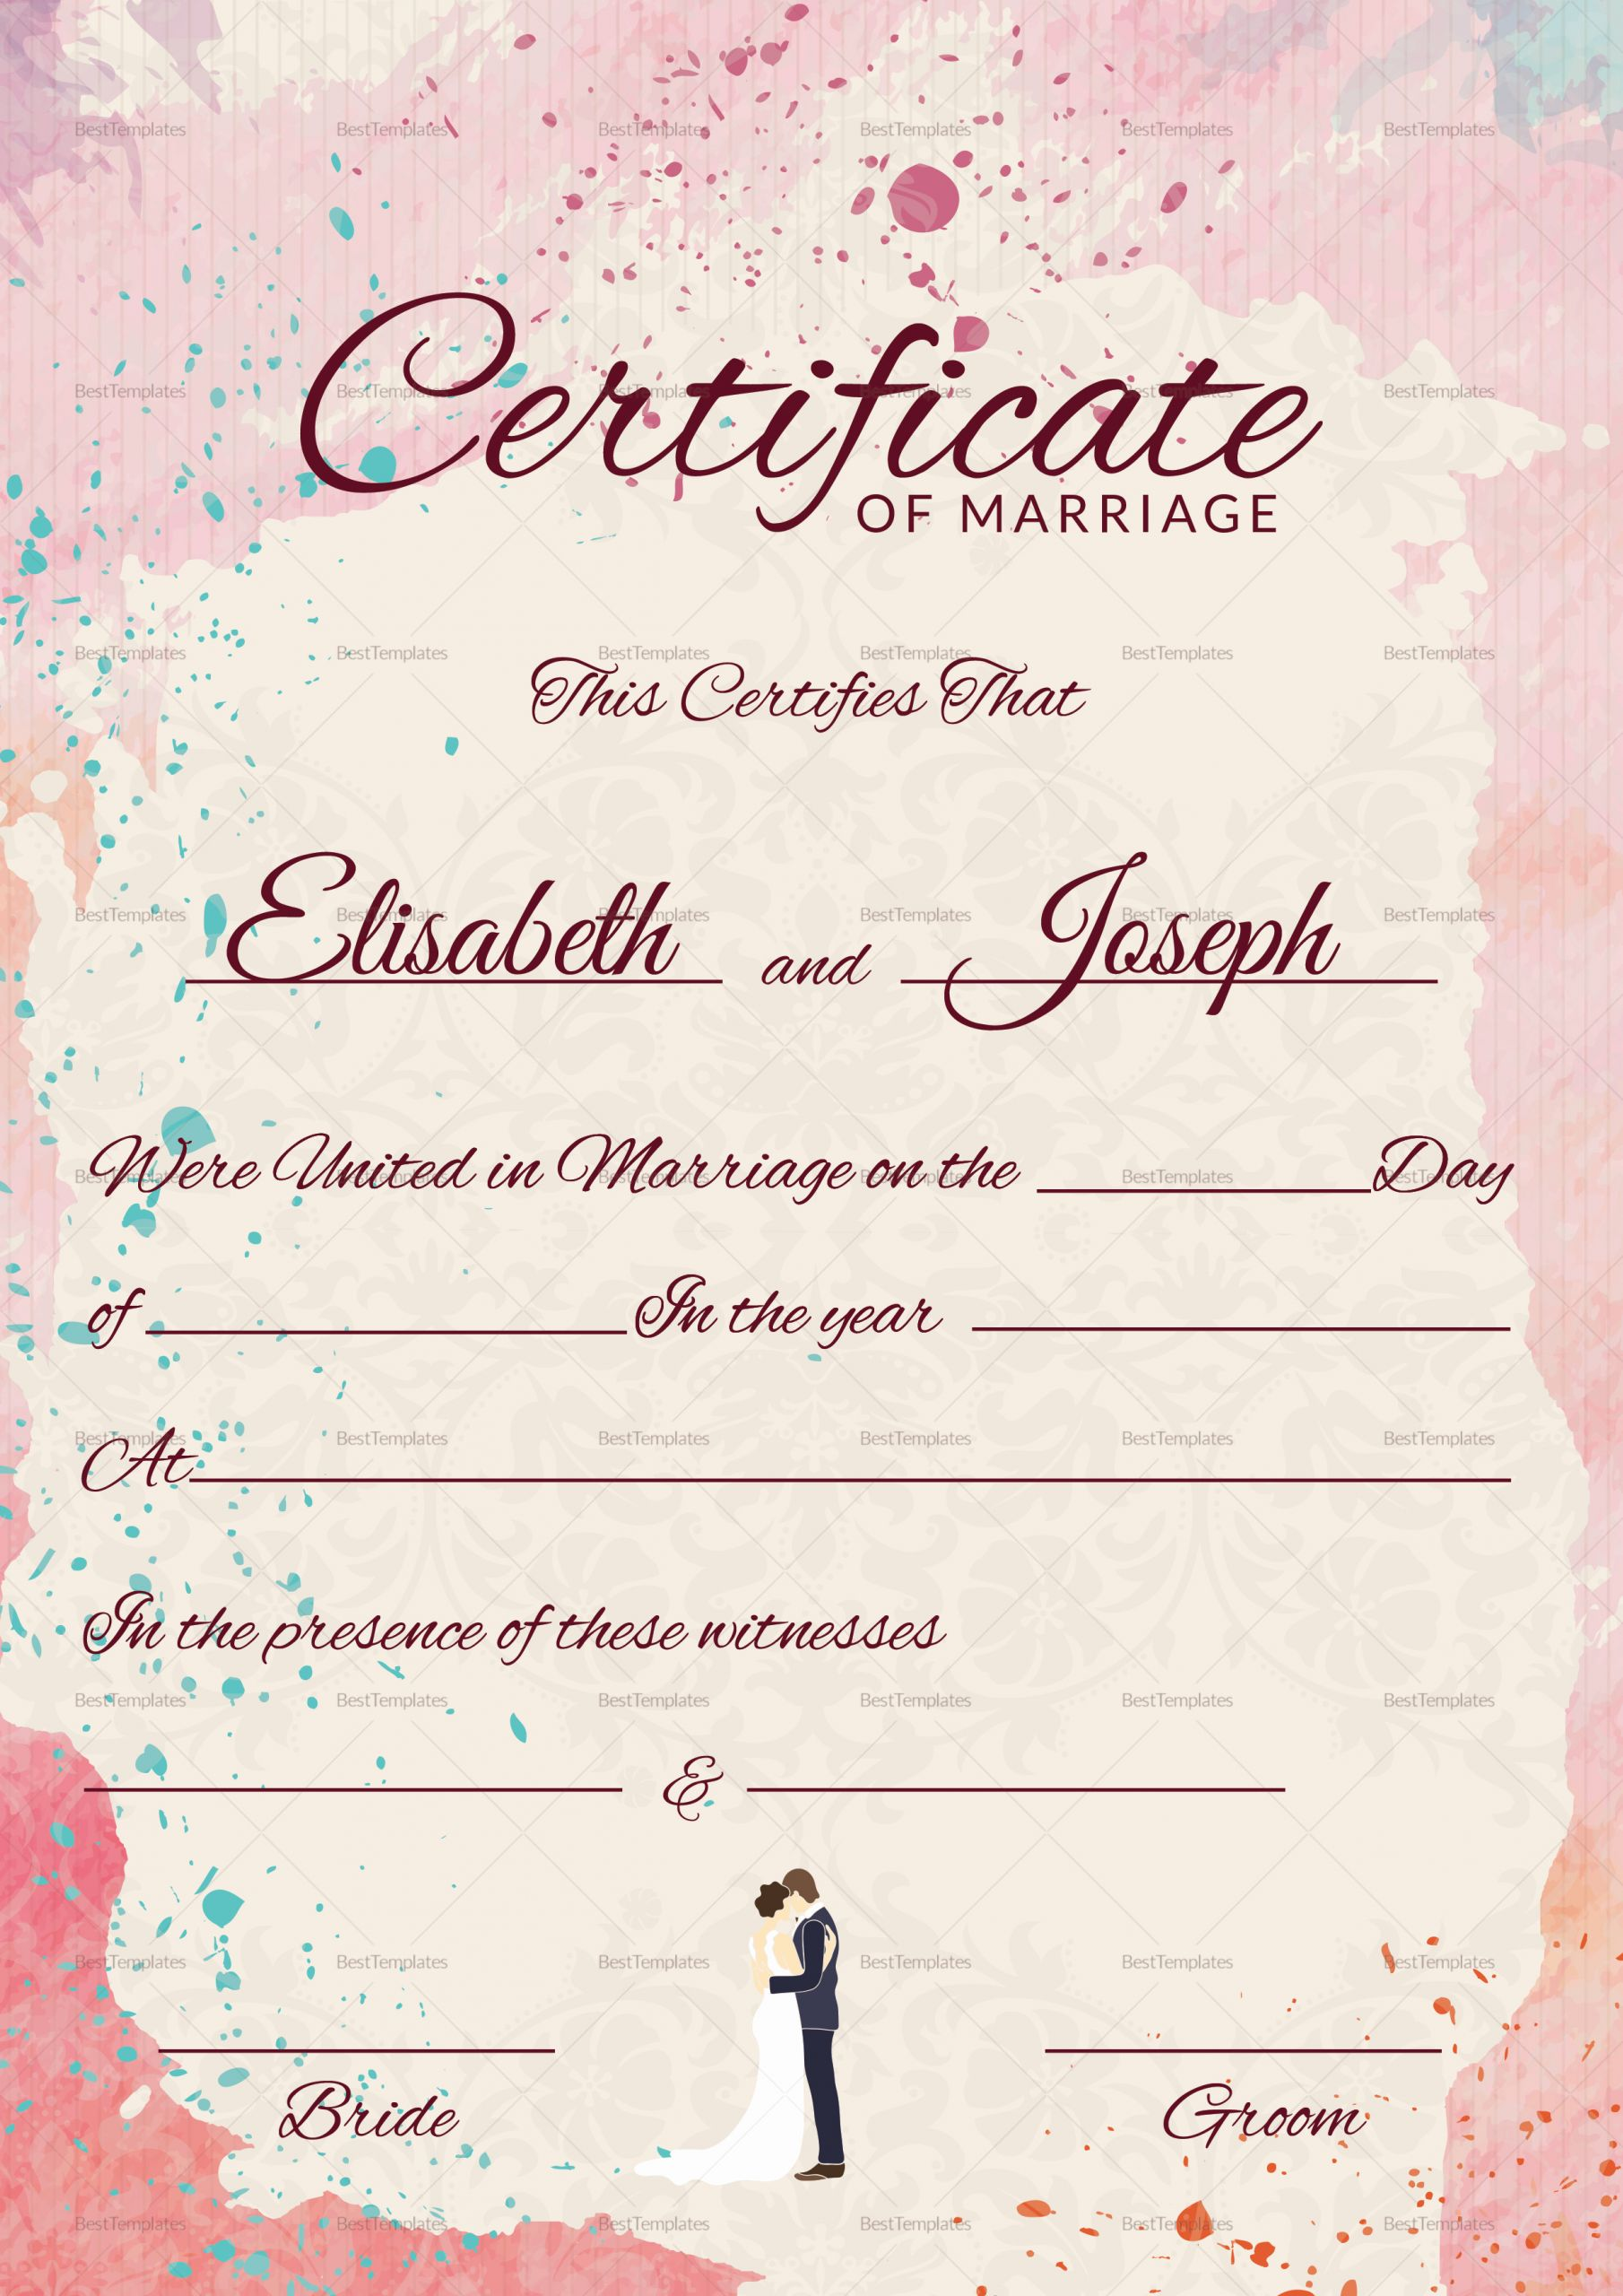 First Haircut Certificate Template Best Of My First Haircut Certificate Haircuts Models Ideas